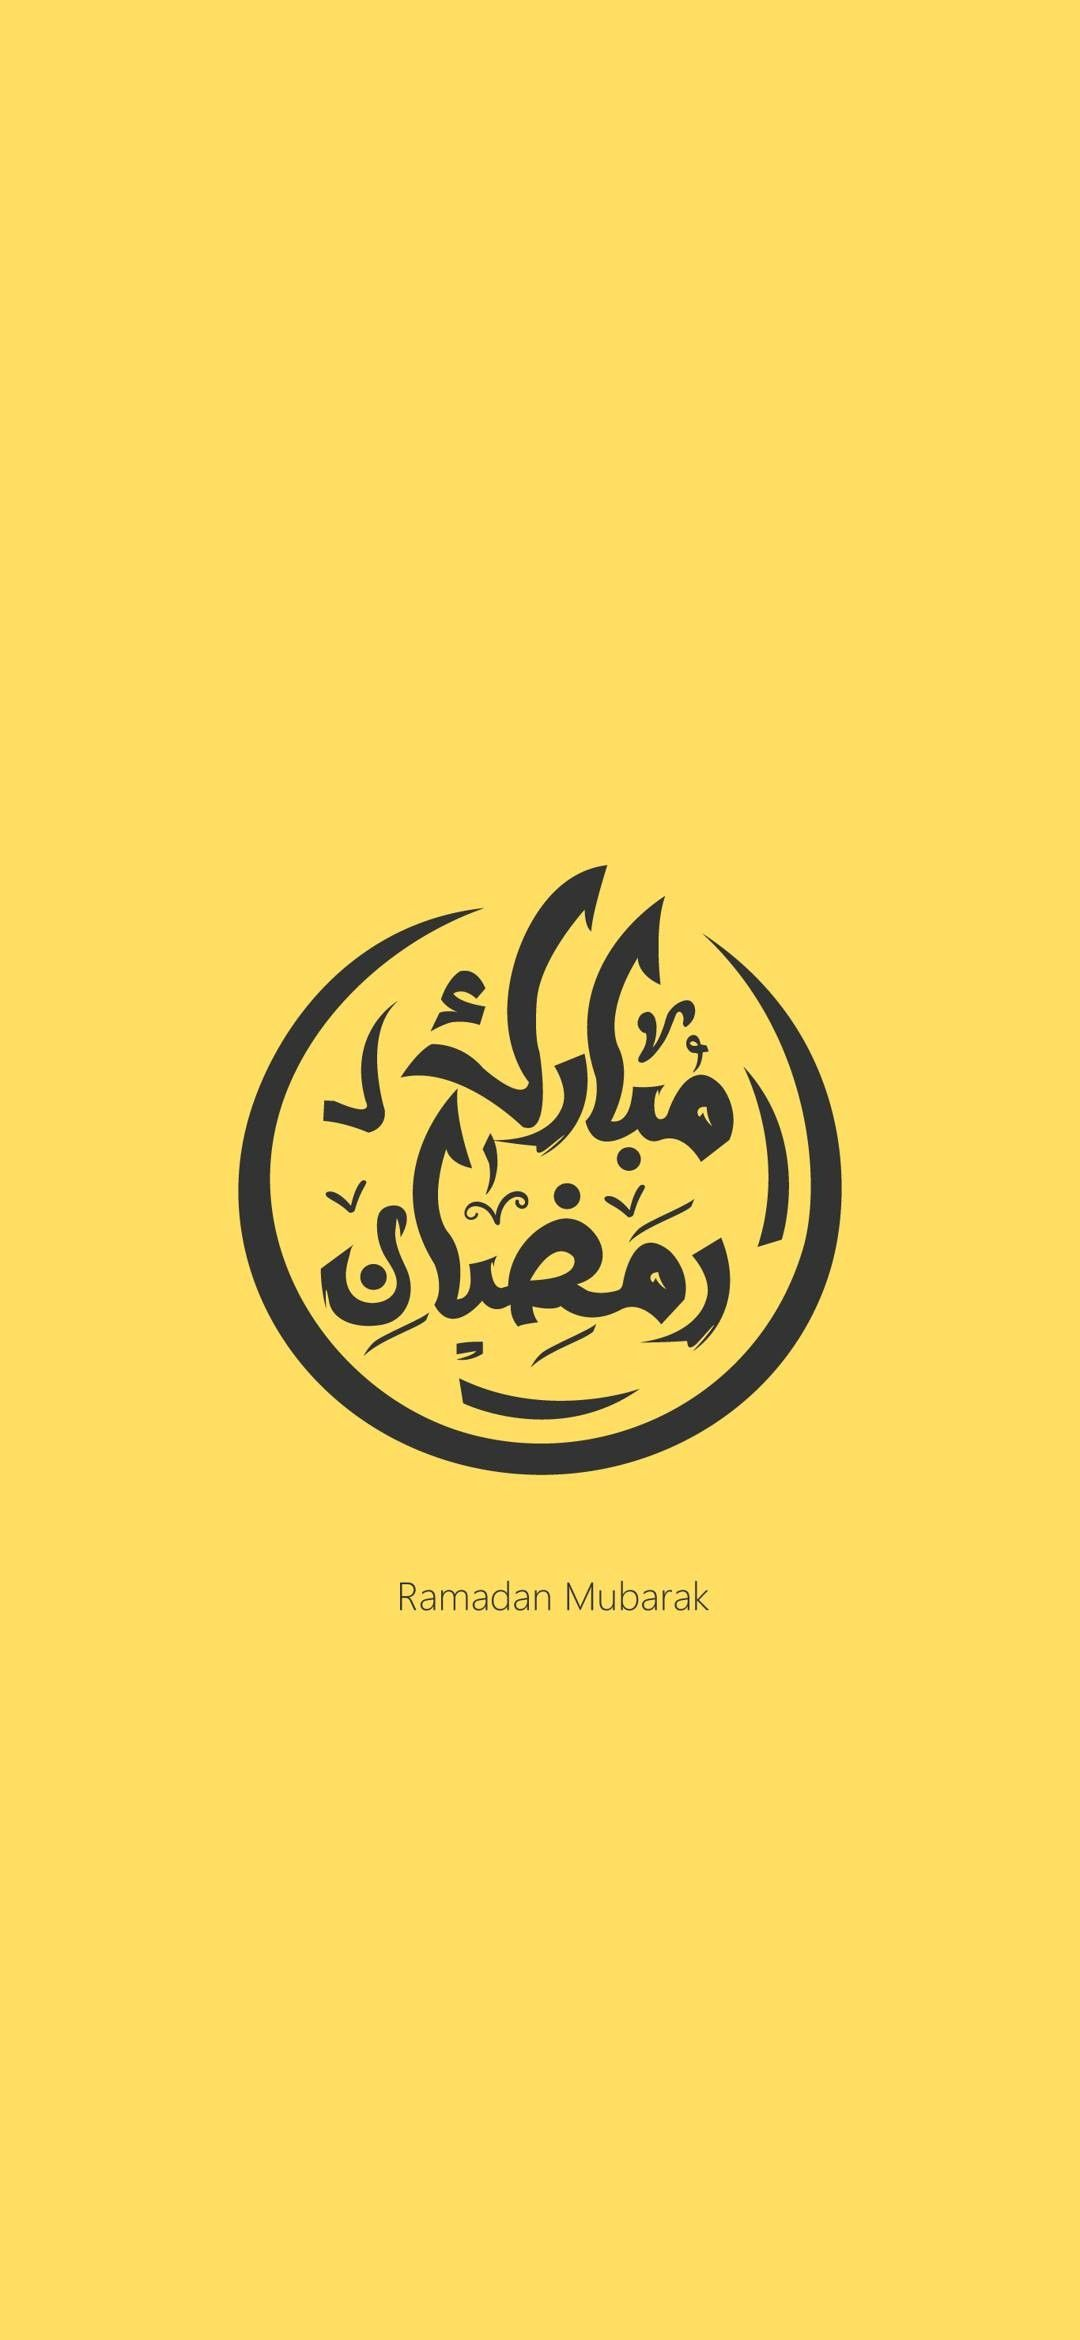 Ramzan Mubarak Images 2020 Ramzan Mubarak Image Mubarak Images Too Late Quotes